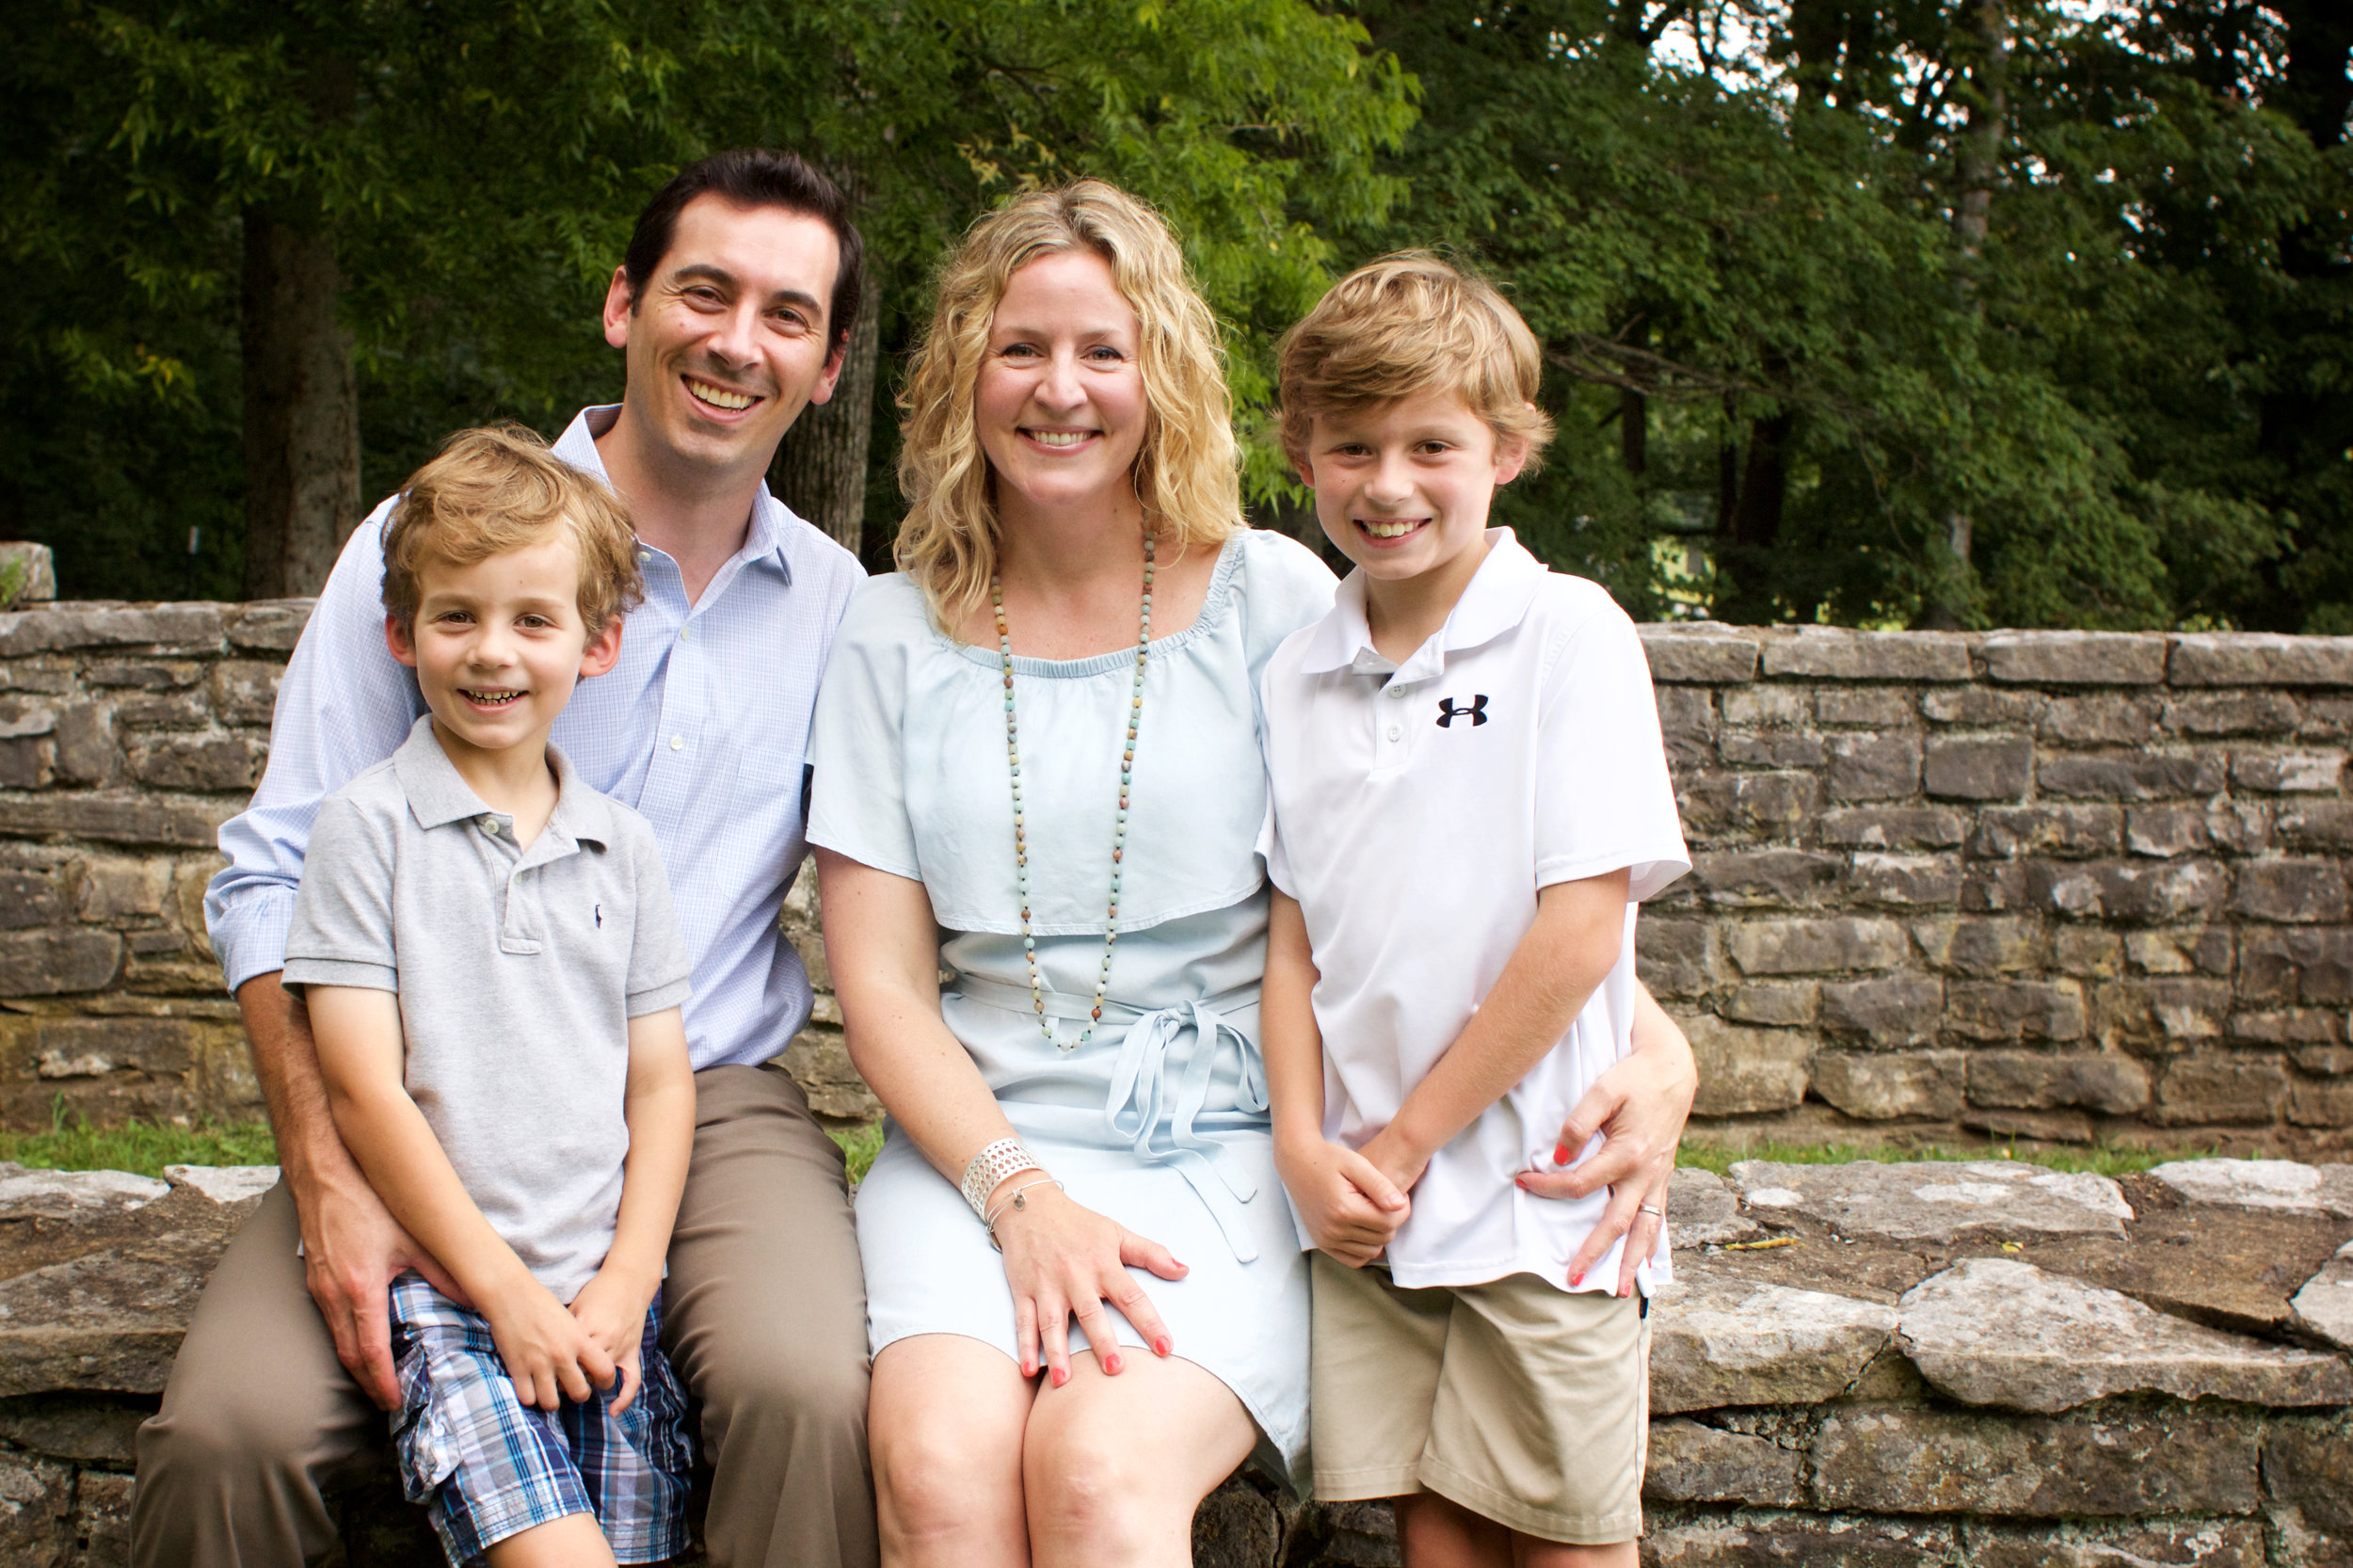 """Leslie and her sweet family - Chris, Hank, and Houston. """"Poop"""" was definitely mentioned to get those great smiles."""